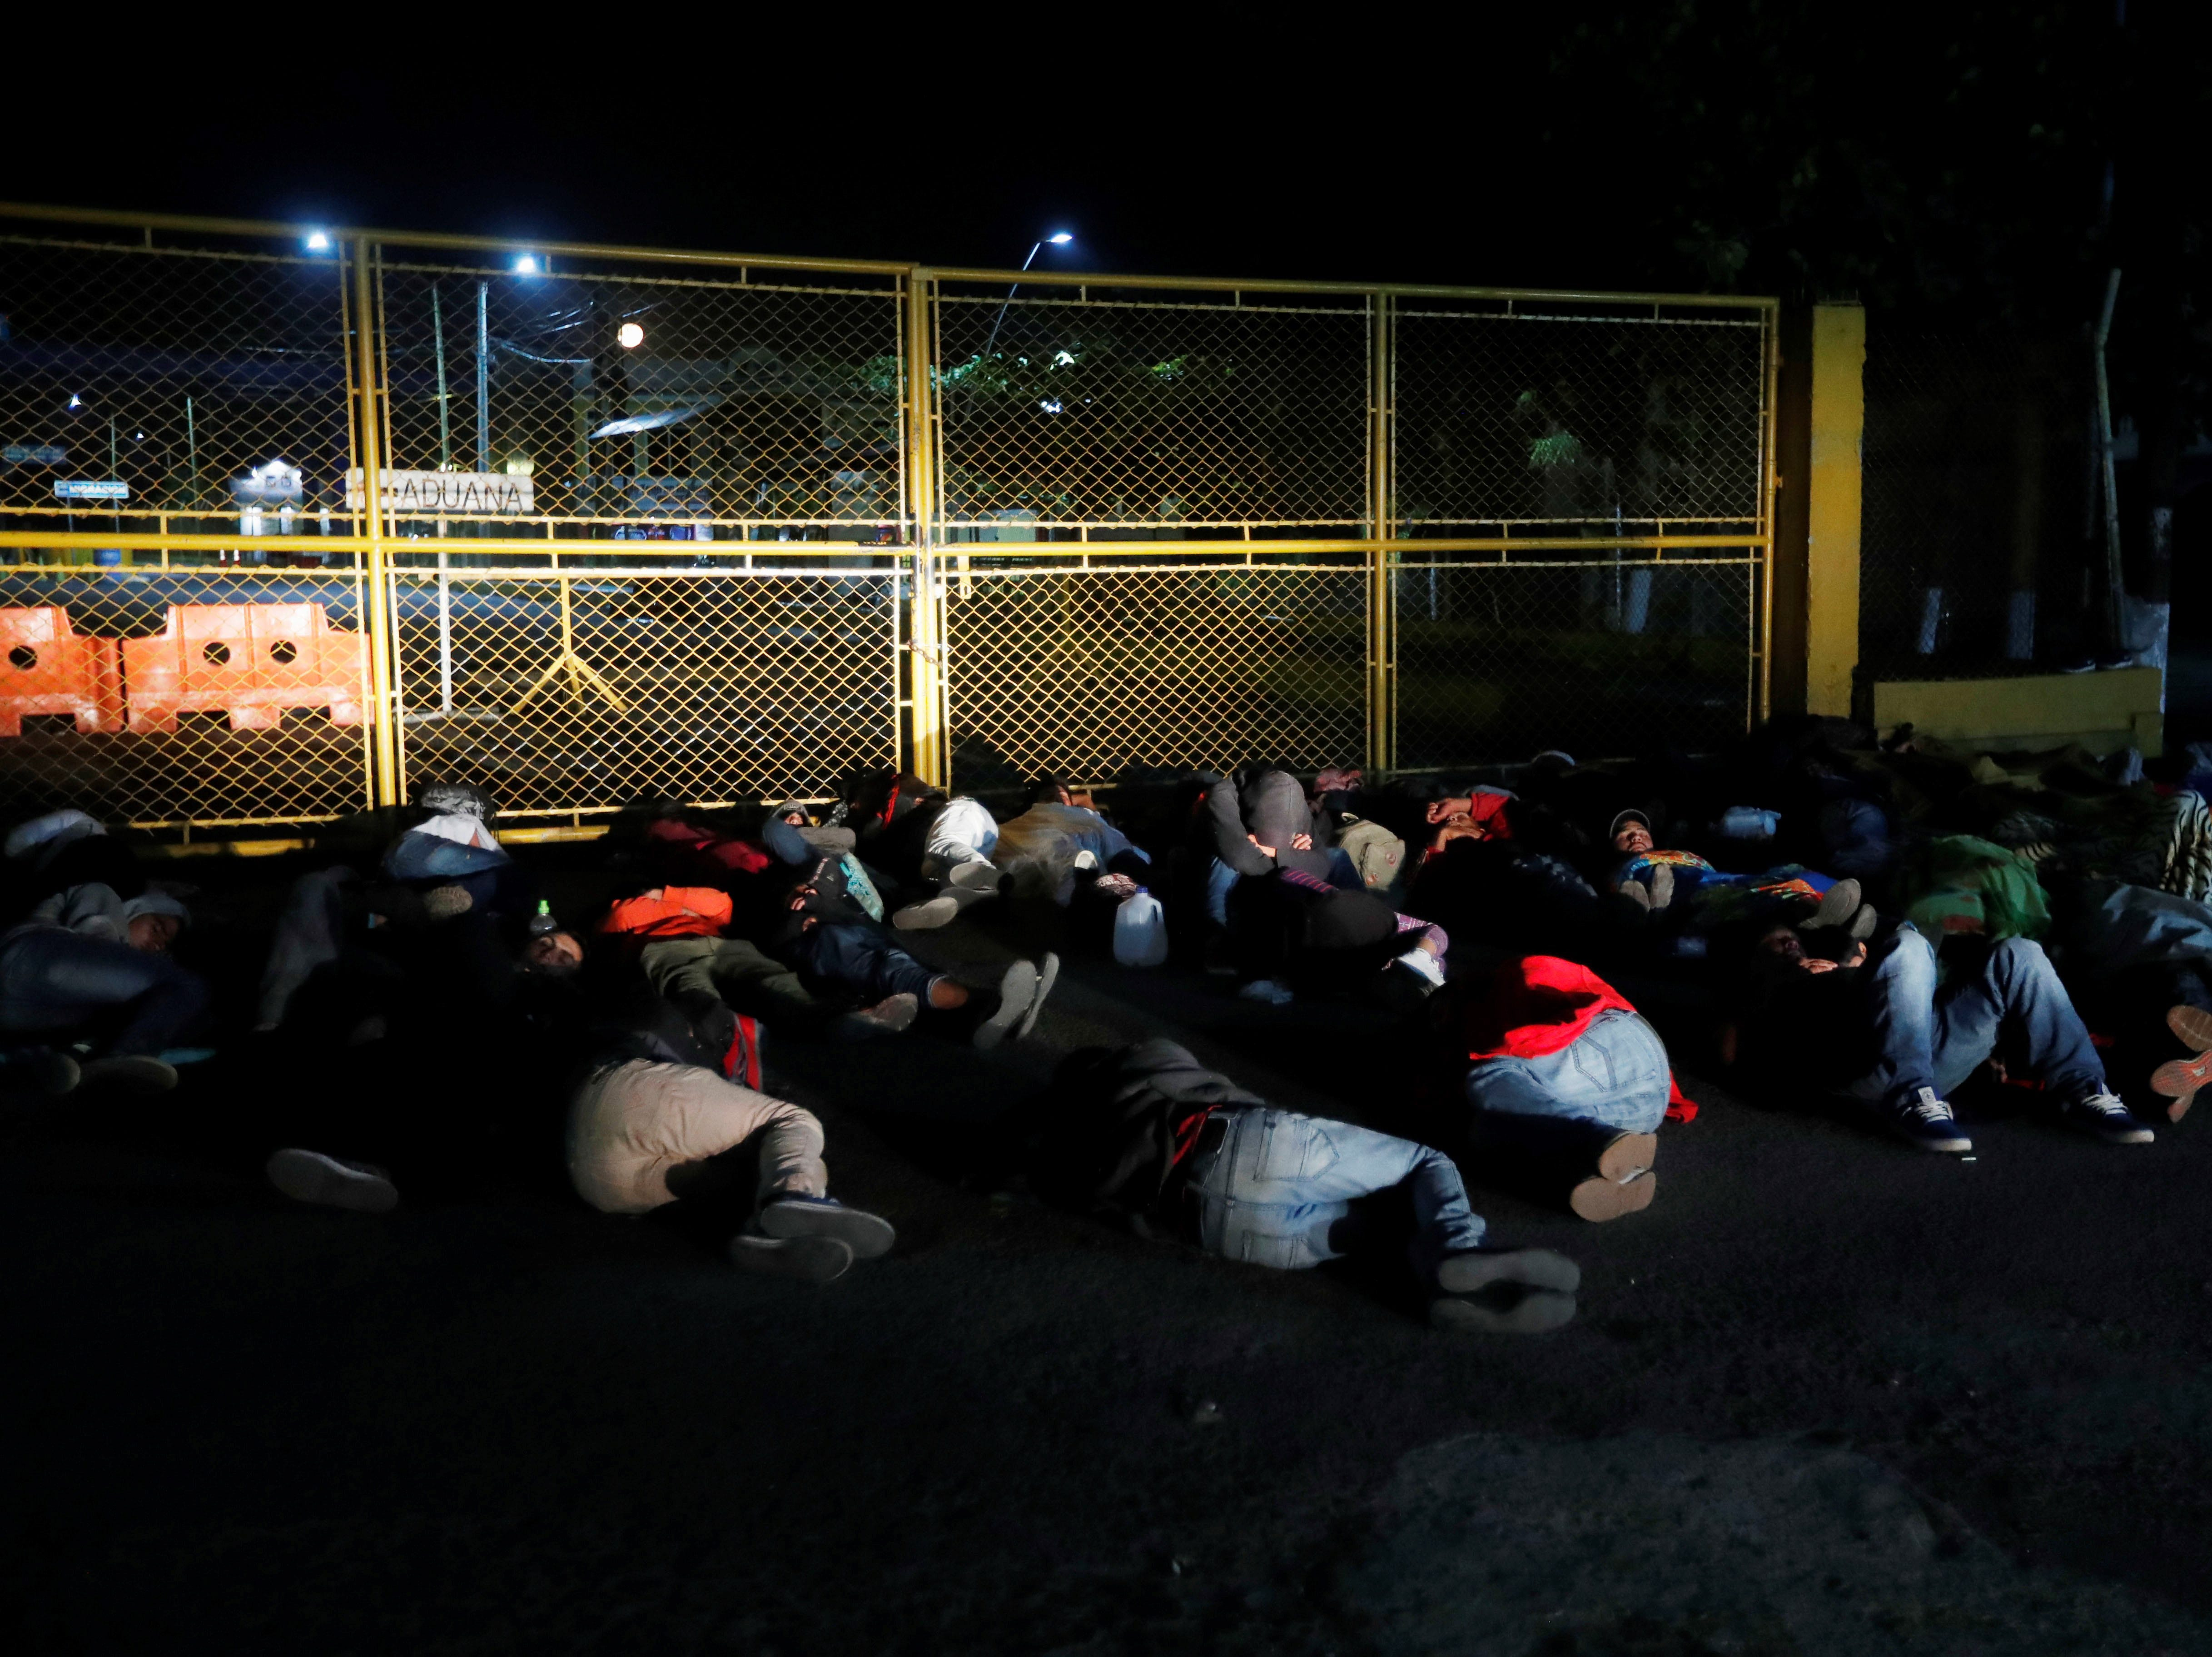 epa07301224 Central American migrants sleep at the entrance of the border office between Guatemala and Mexico in Tecun Uman, Guatemala, 19 January 2019. Hundreds of Central American migrants entered Mexico illegally and began their route to US on Saturday in the state of Chiapas, in southeastern Mexico, from Tapachula to Huixtla, at a distance of about 40 kilometers.  EPA-EFE/Esteban Biba ORG XMIT: AME9641